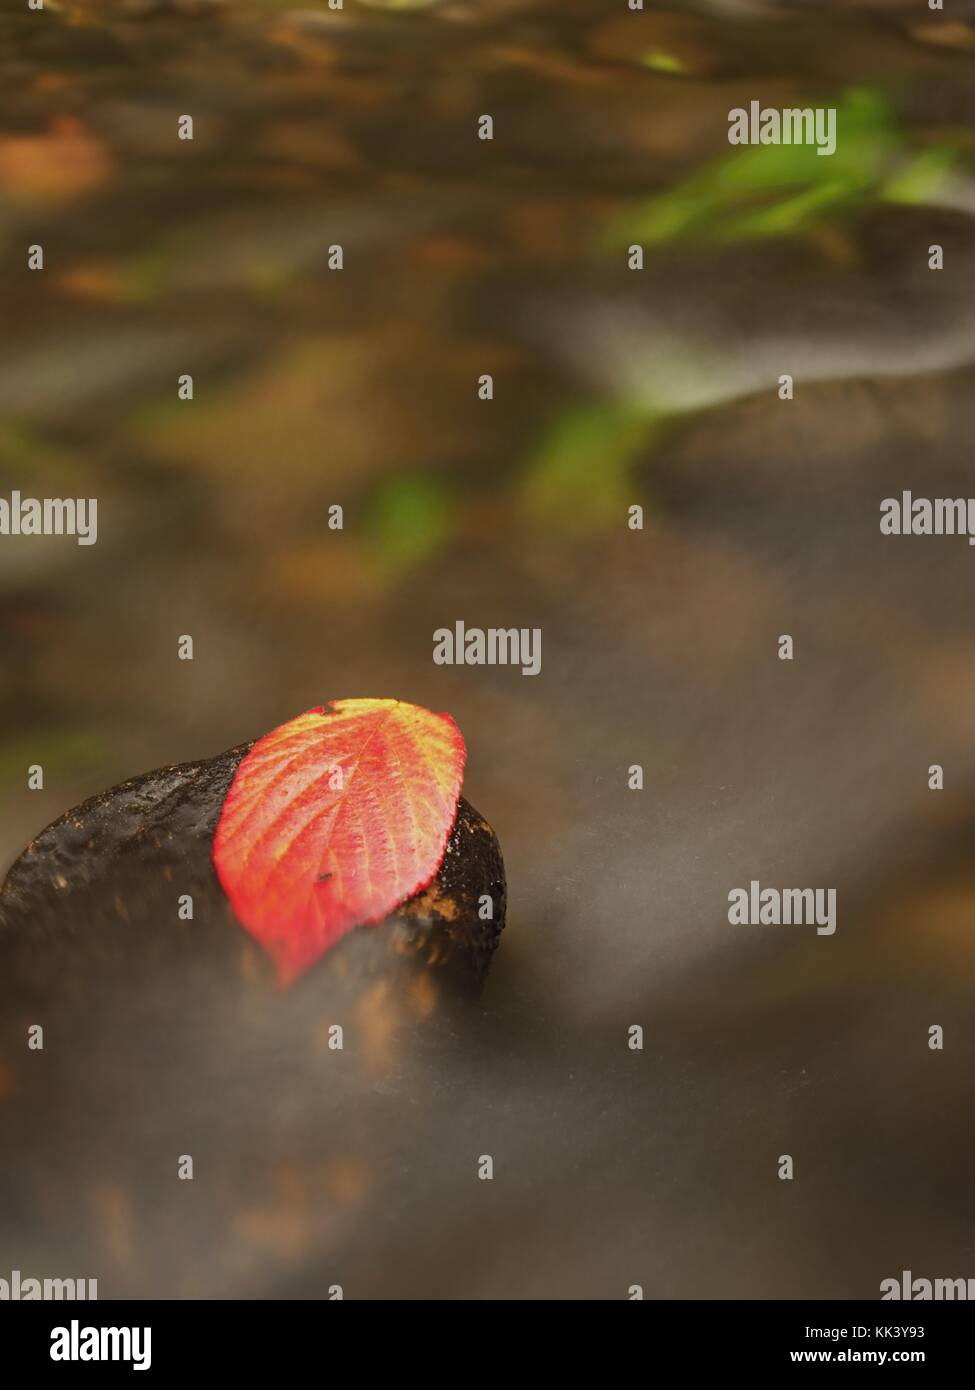 Thorny raspberry leaf caught on wet stone. A leaves trapped in the middle of a mountain stream. - Stock Image